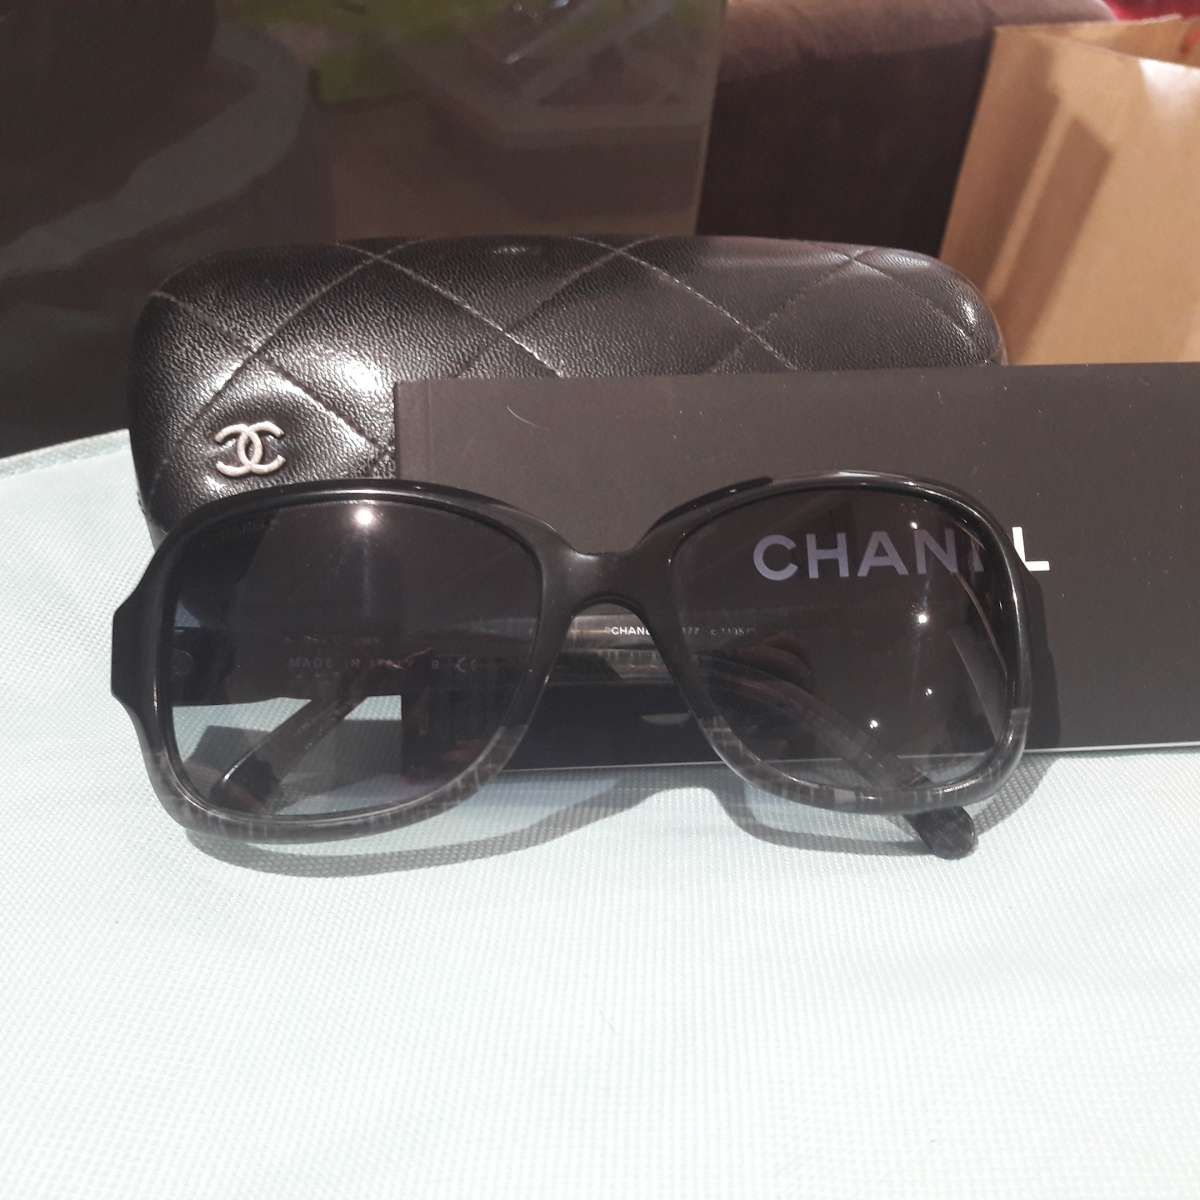 Lunettes solaire Chanel – Luckyfind 3ae6905456c0